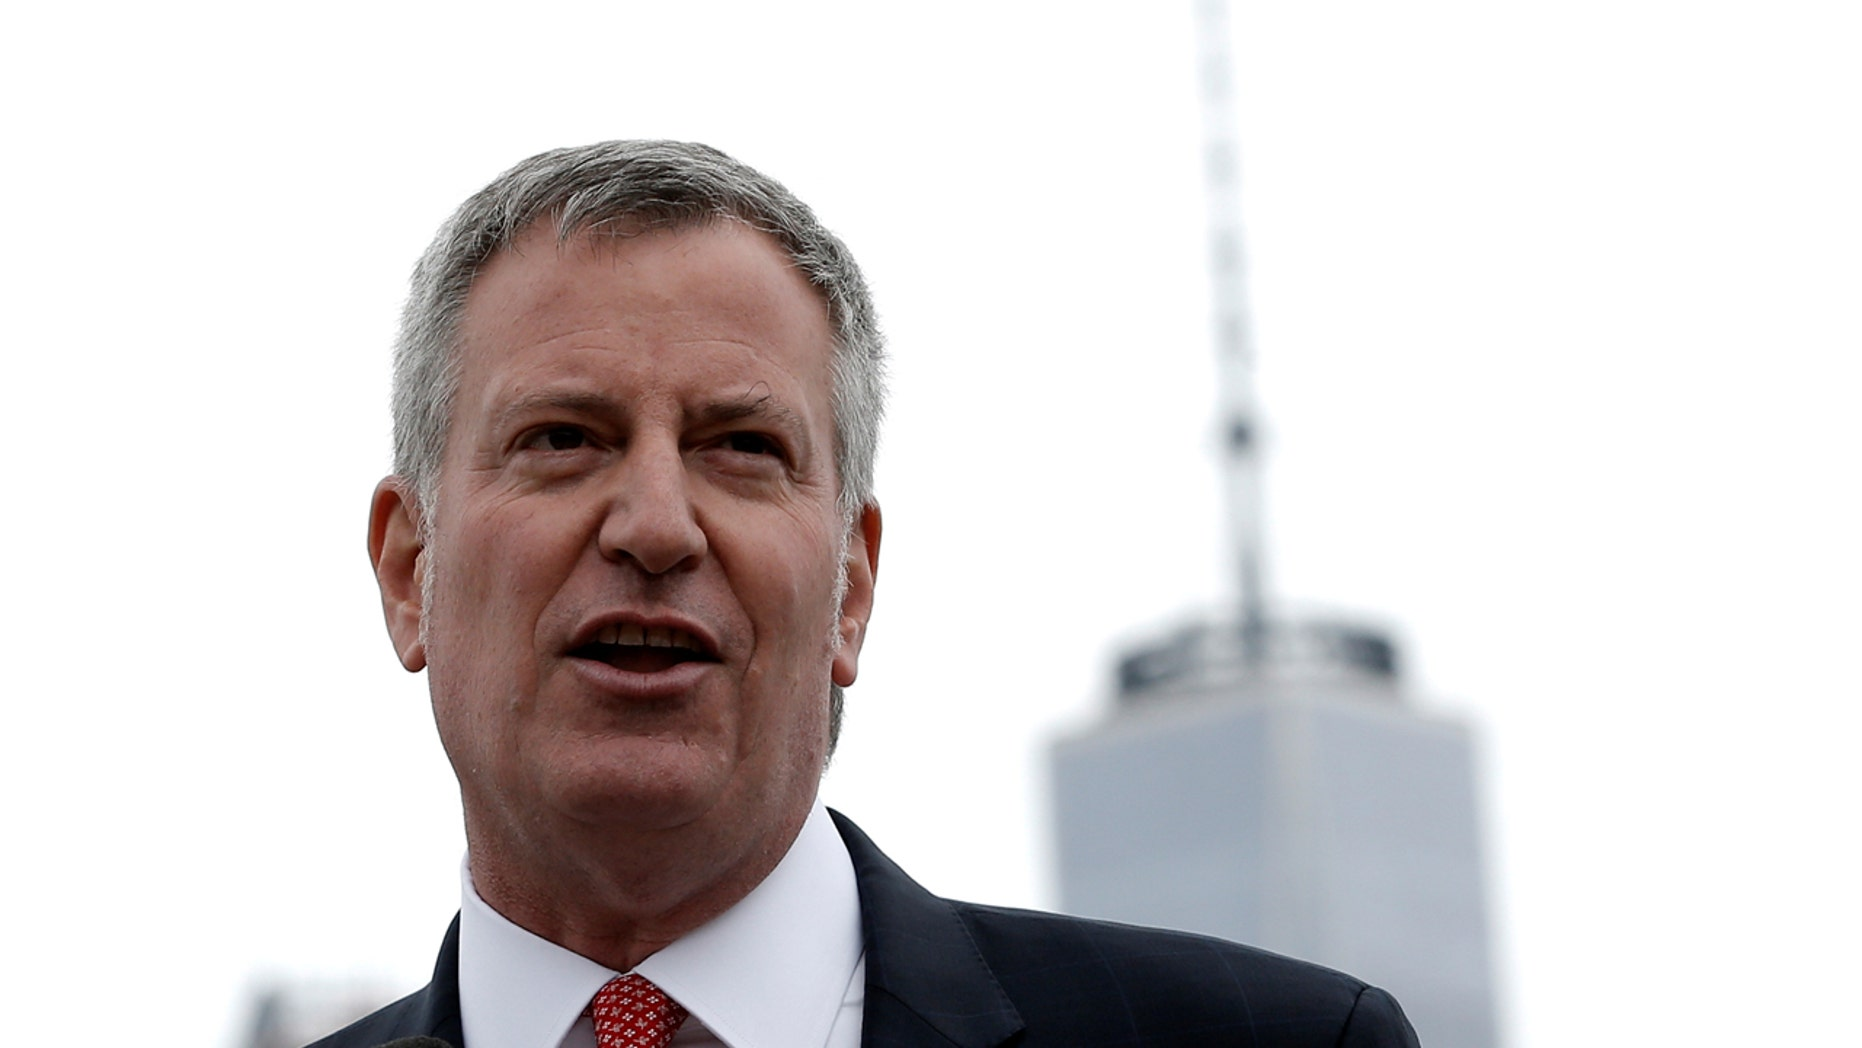 New York City Mayor Bill de Blasio is seen speaking in Brooklyn.